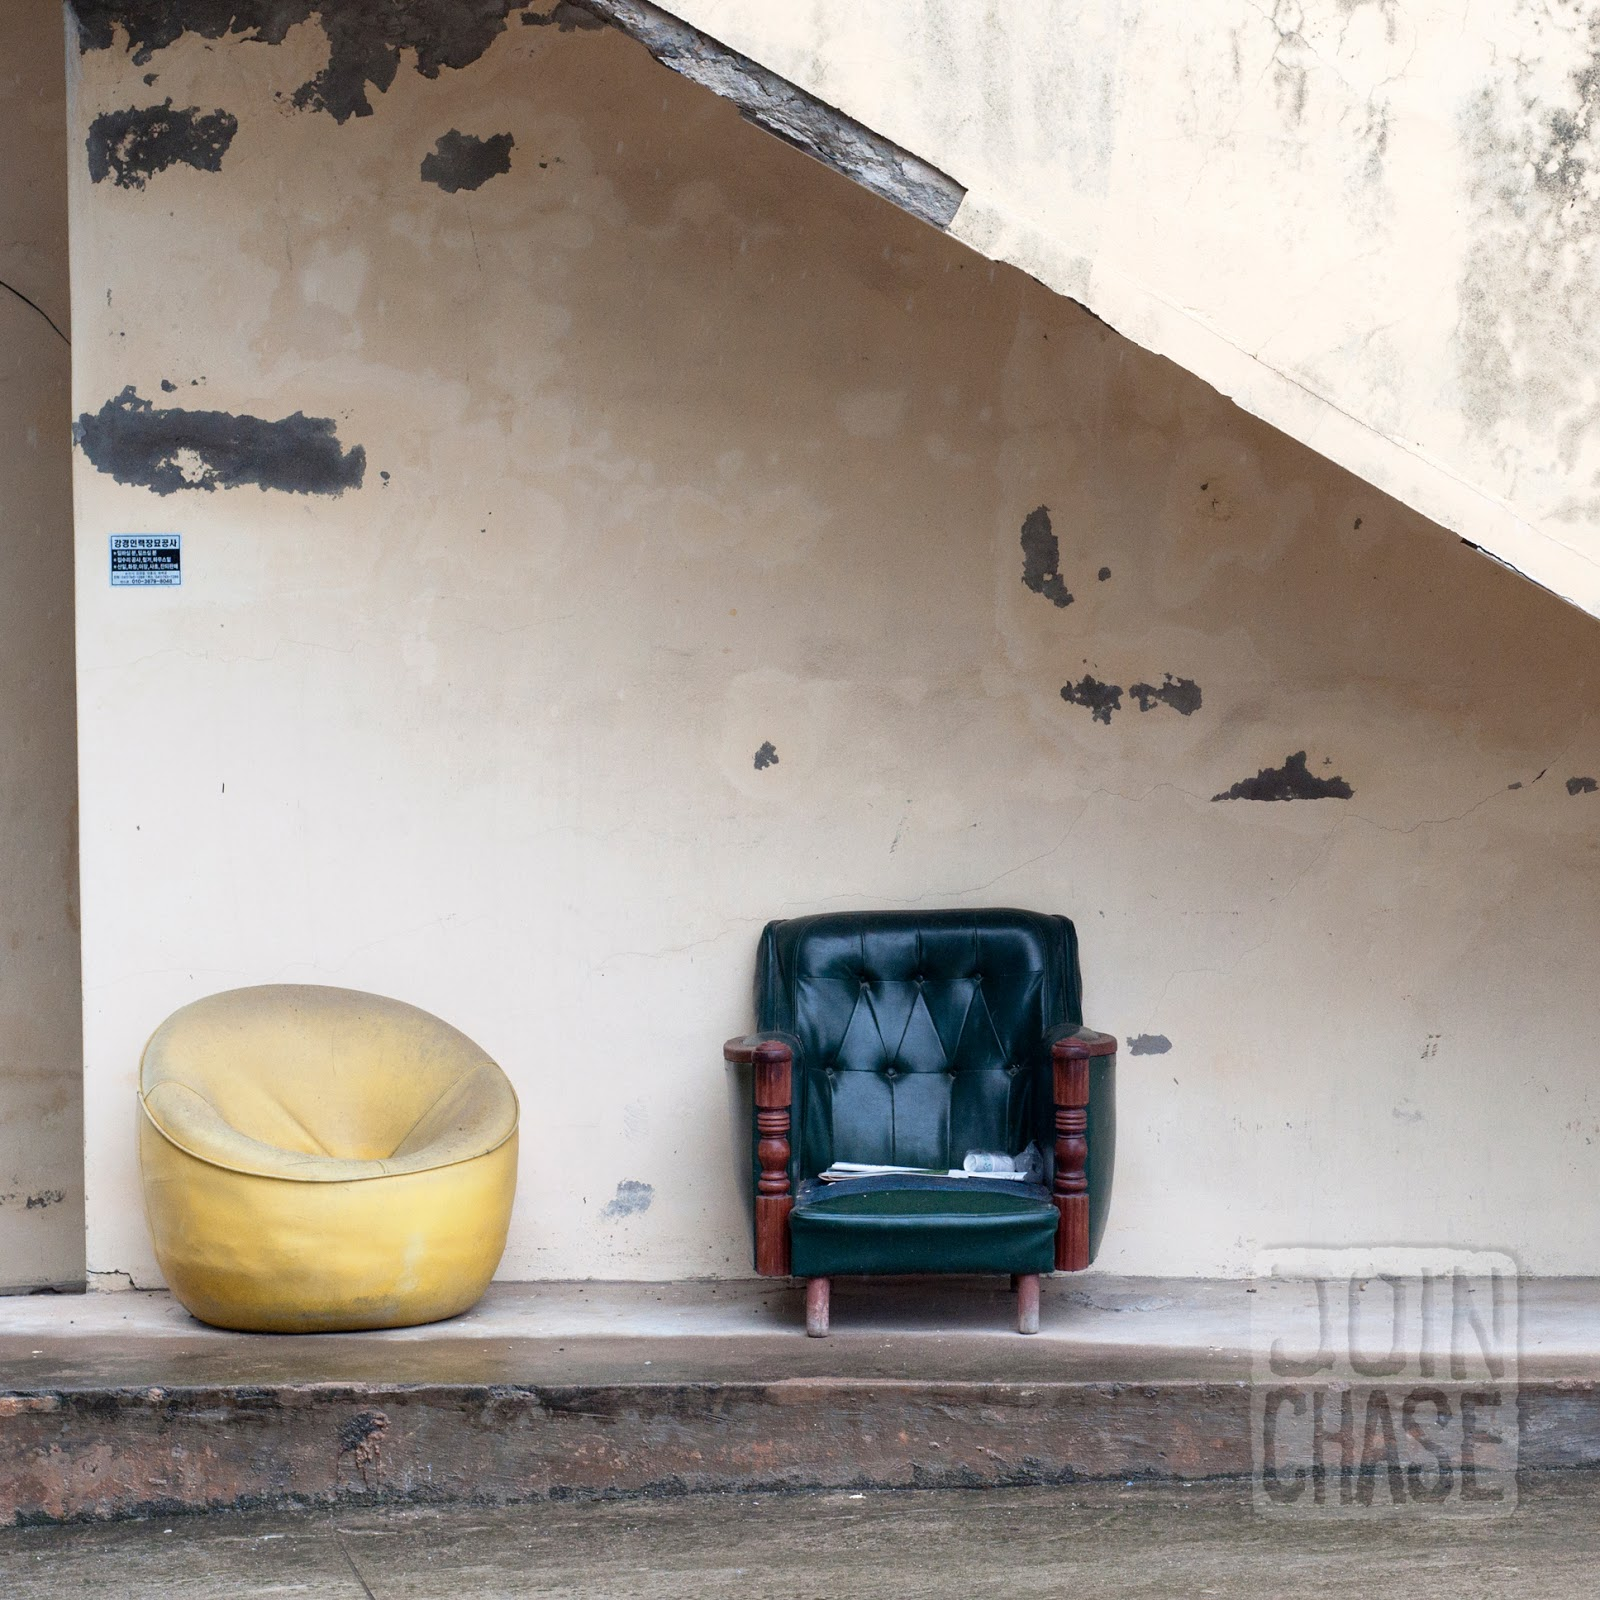 Chairs in front of an old building along the Geum River Bike Path in South Korea.